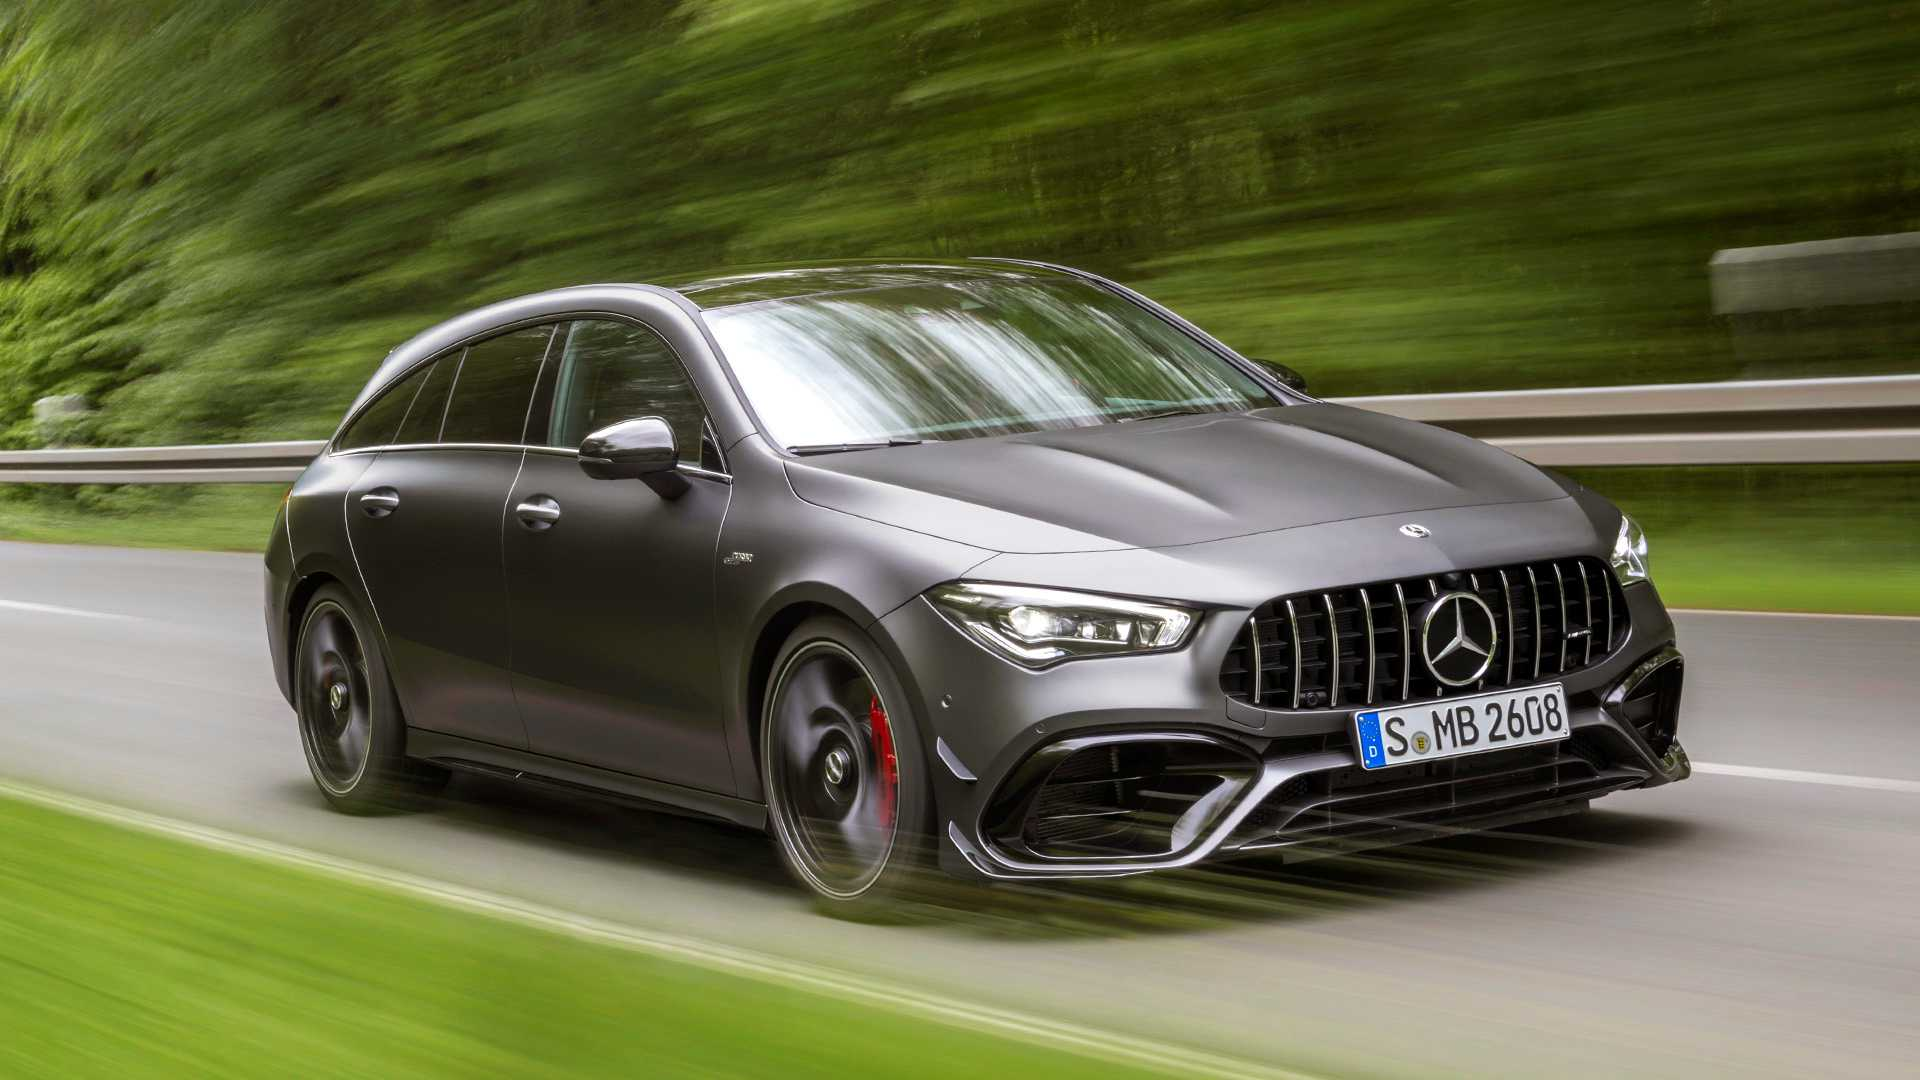 2020 Mercedes-AMG CLA 45 S 4MATIC+ Shooting Brake Front Three-Quarter Wallpapers (1)